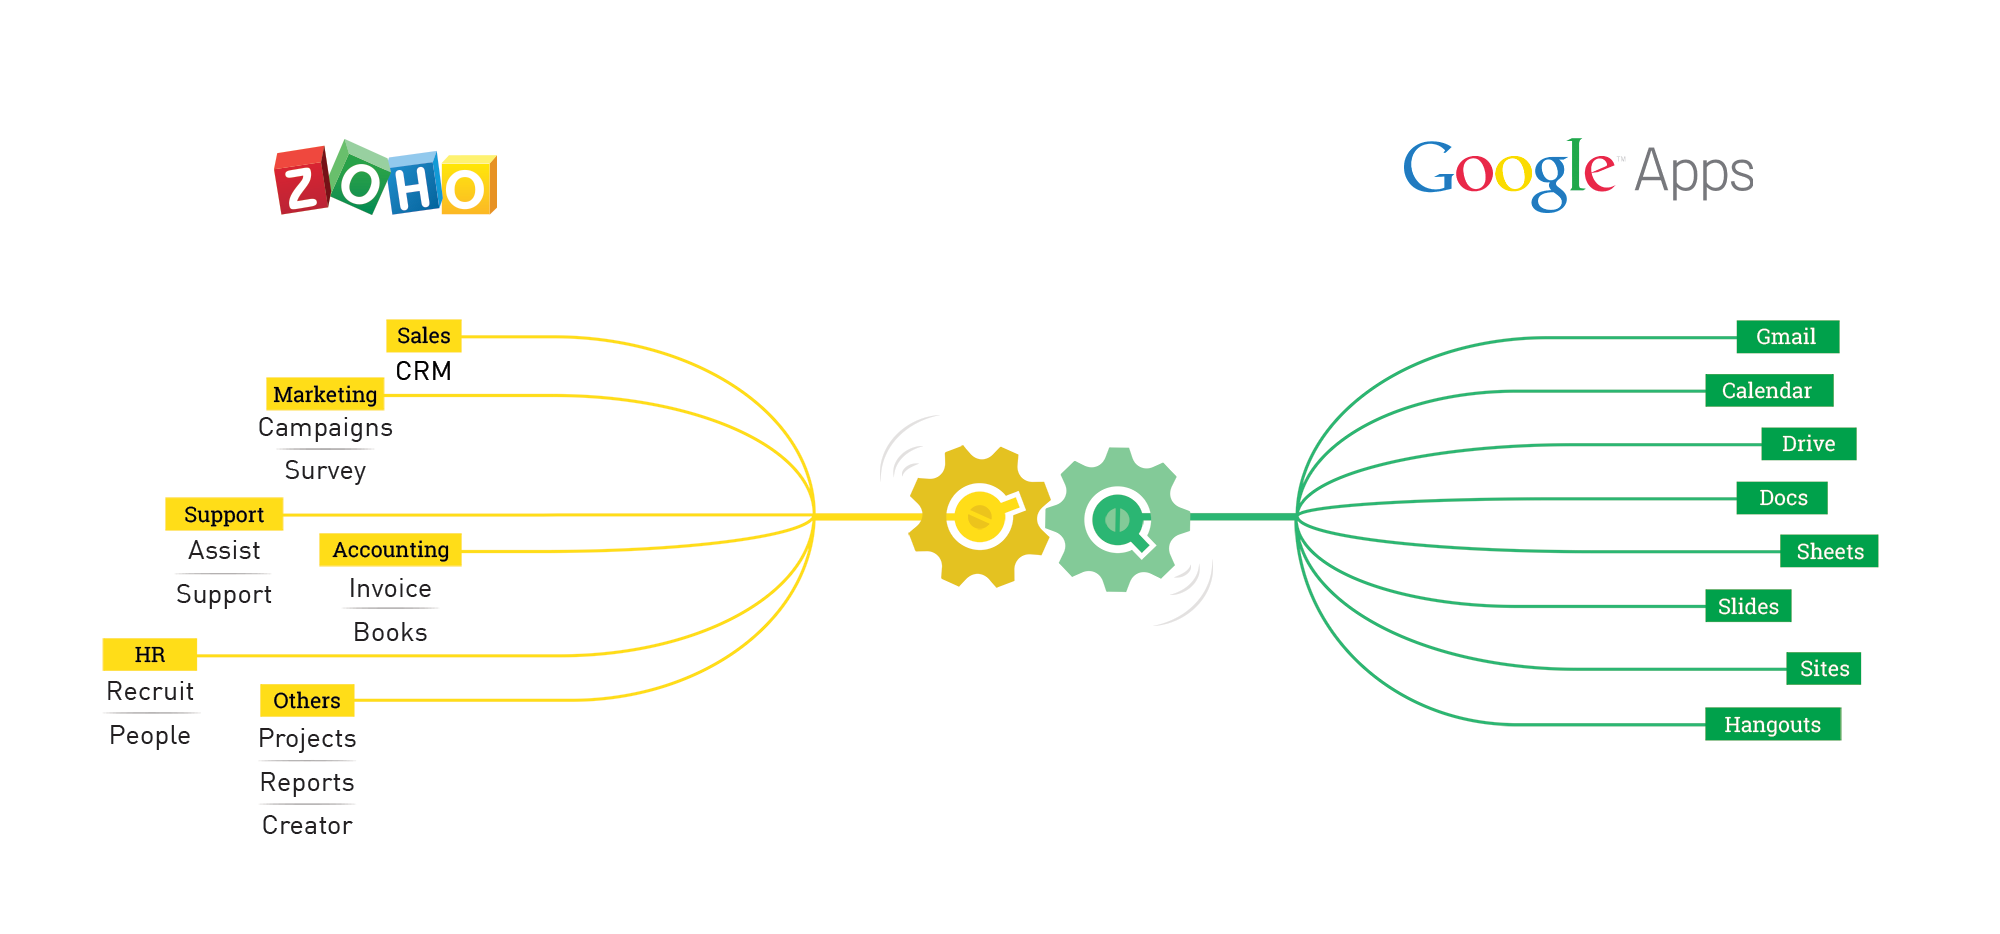 Zoho and Google Apps